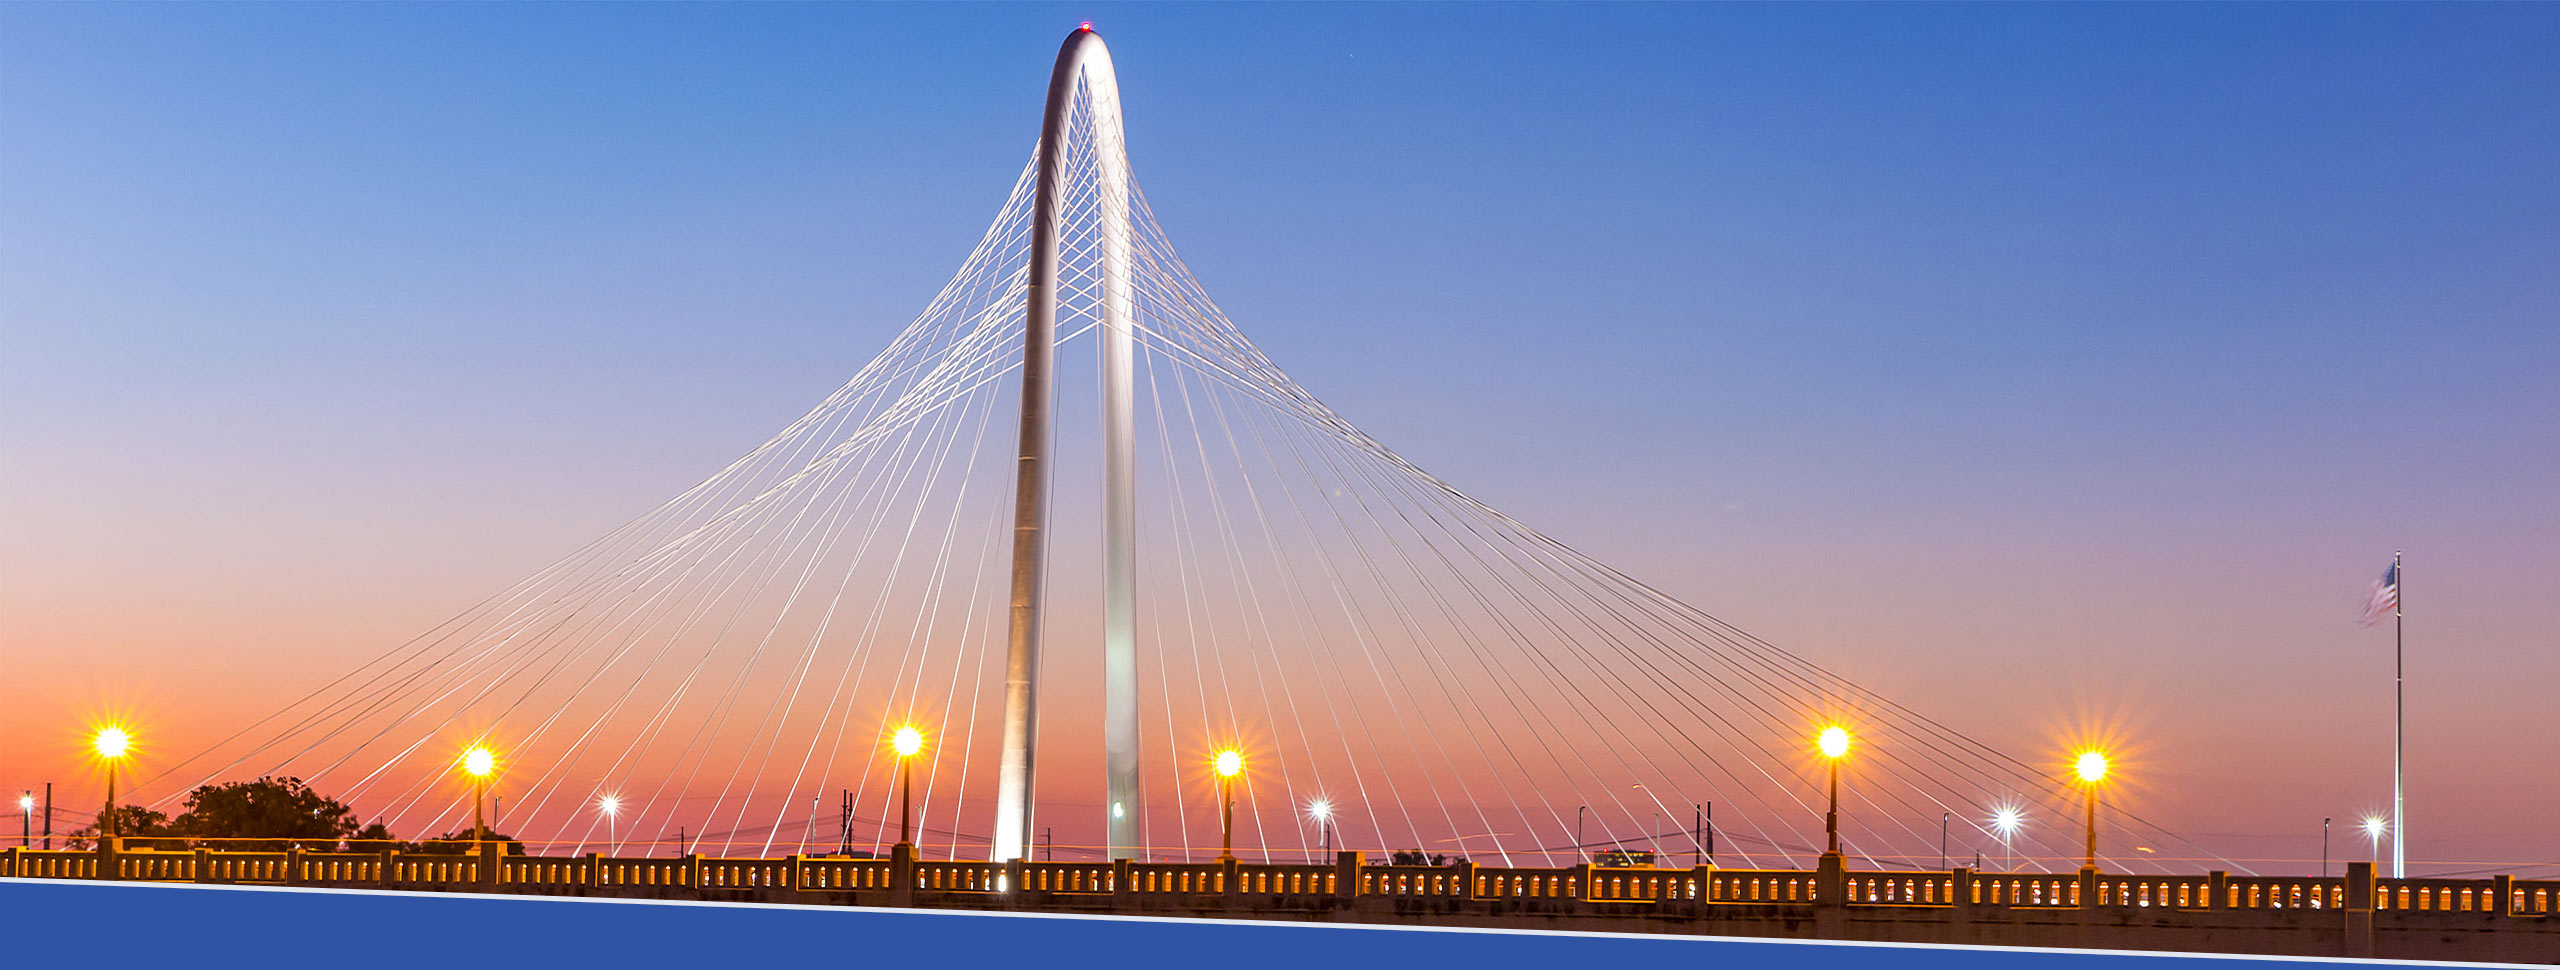 Sunrise at Margaret Hunt Hill Bridge, with Ronald Kirk Pedestrian Brigde in the foreground. Dallas, Texas.